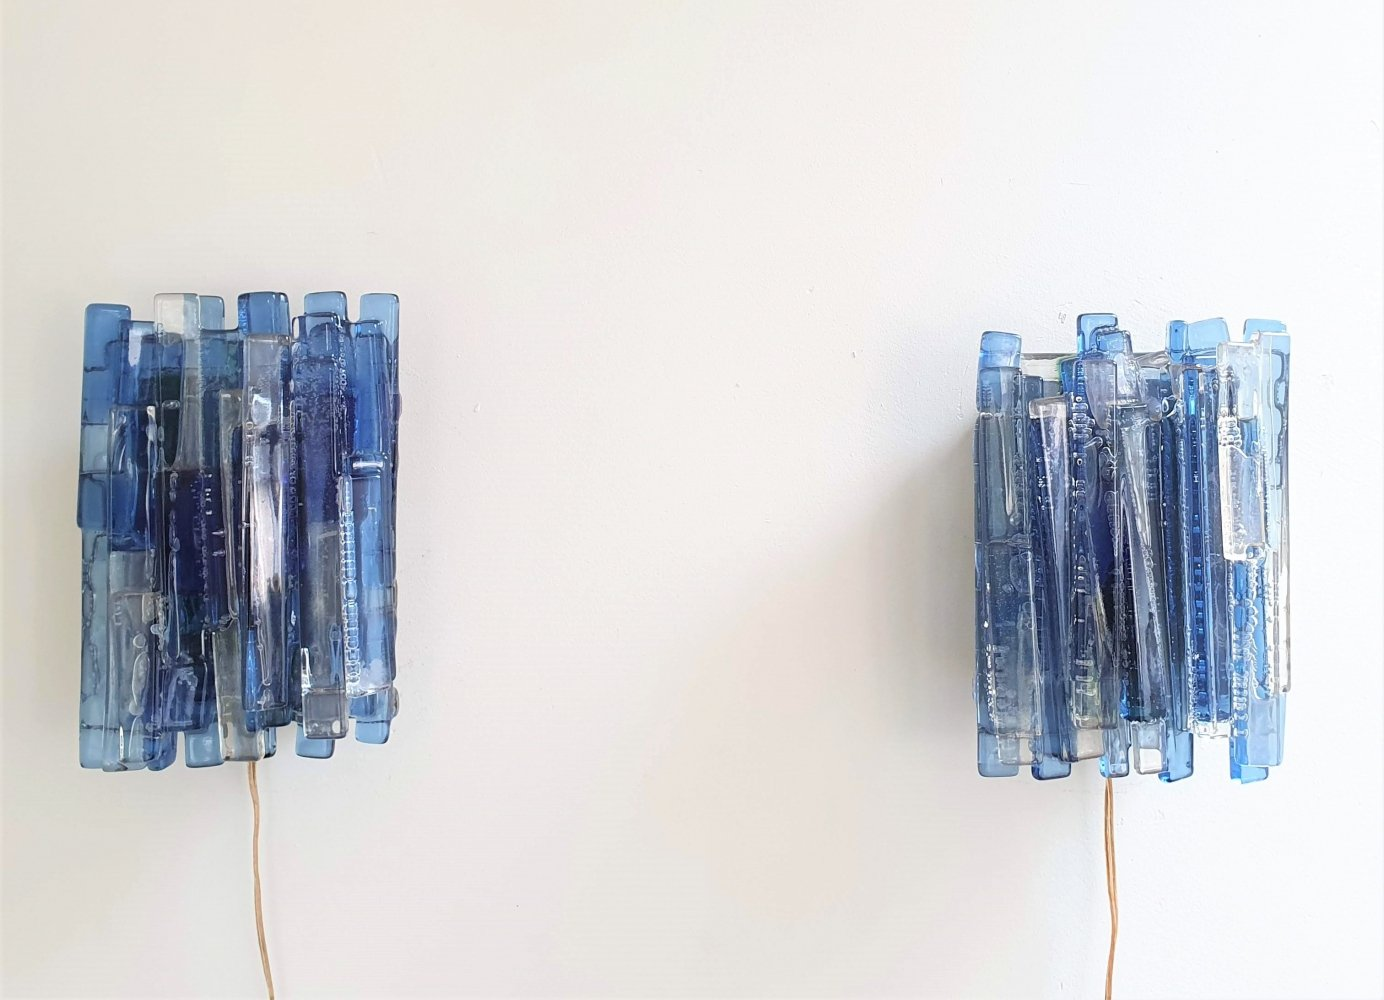 Pair of Large Claus Bolby wall lamps by Cebo Industri, Denmark 1960s